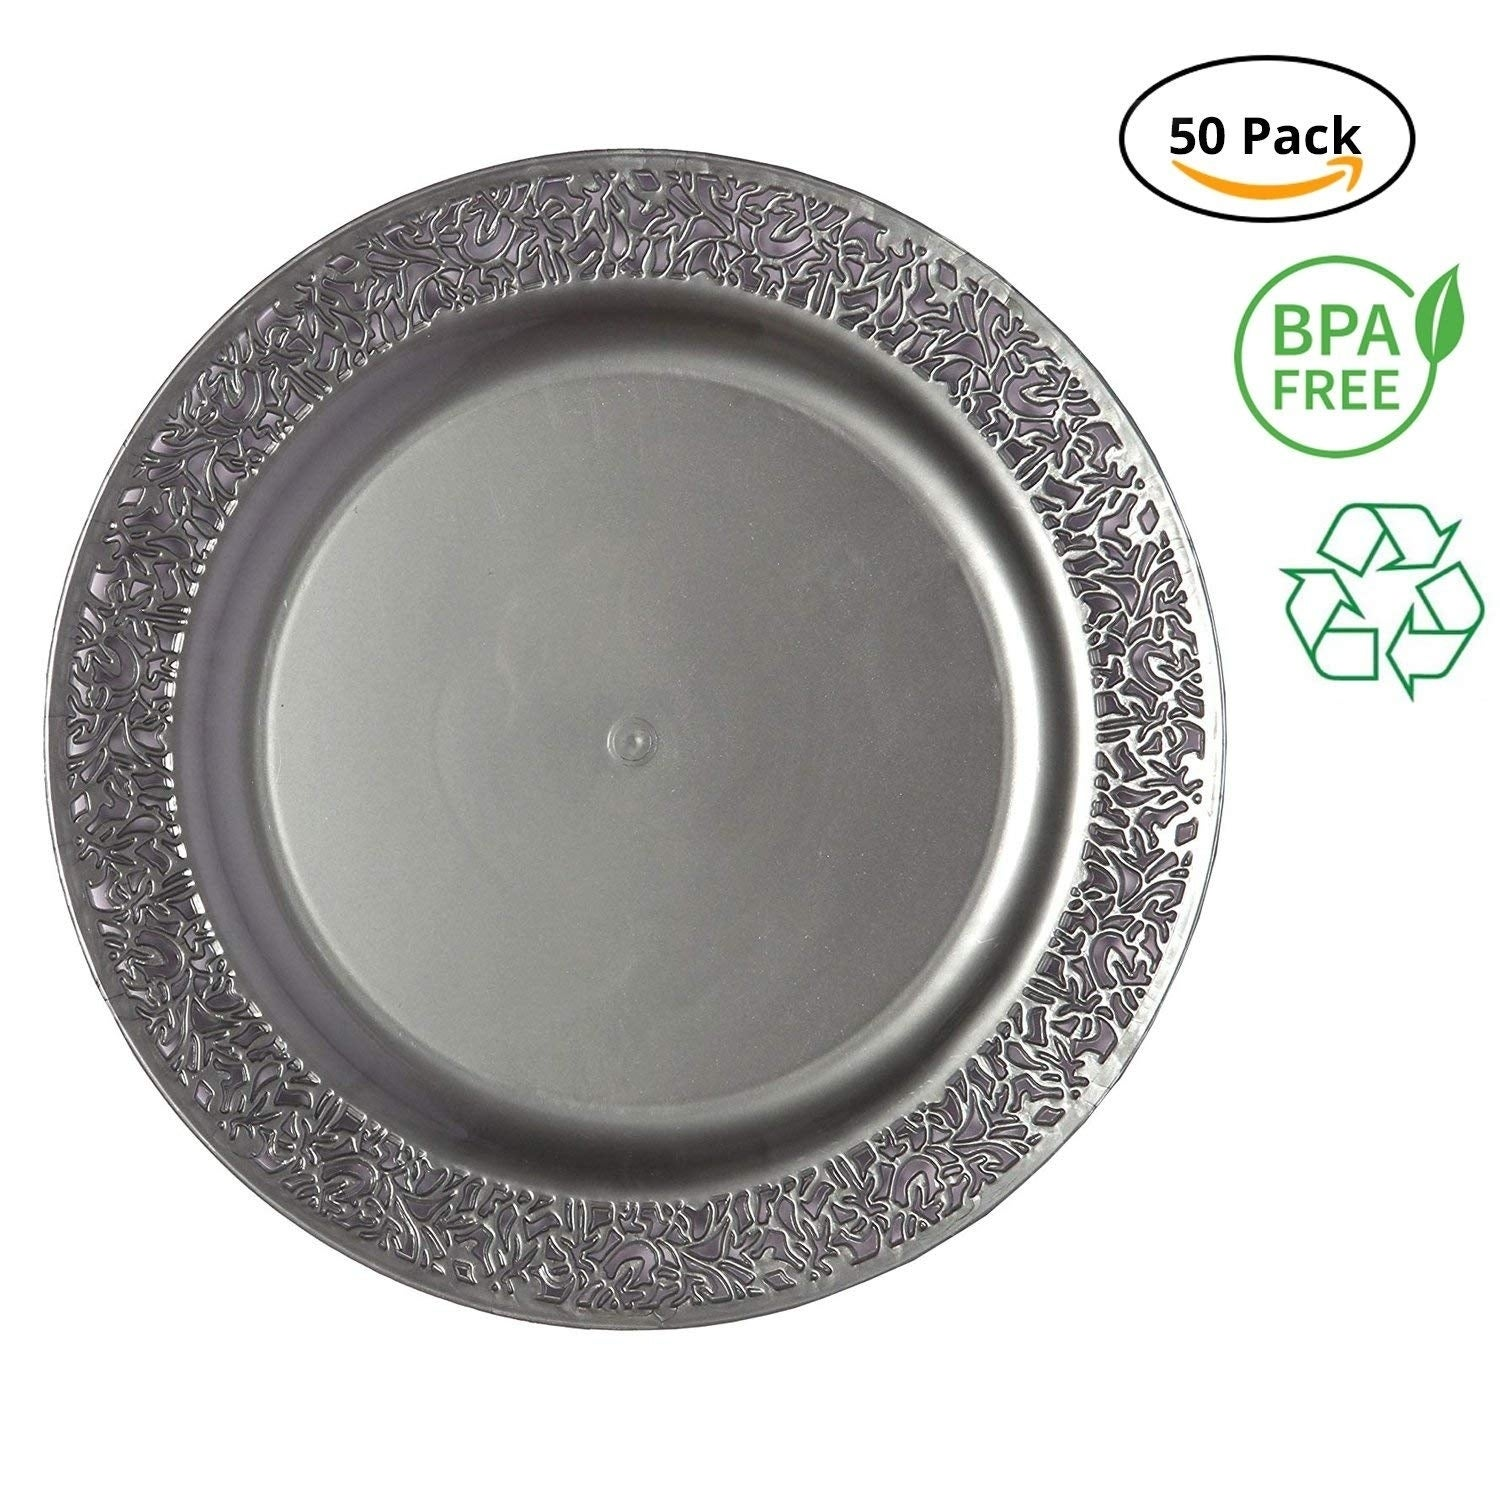 Shop party joy 50 piece plastic dinner plate set lace collection heavy duty premium plastic plates grey free shipping today overstock 27166234